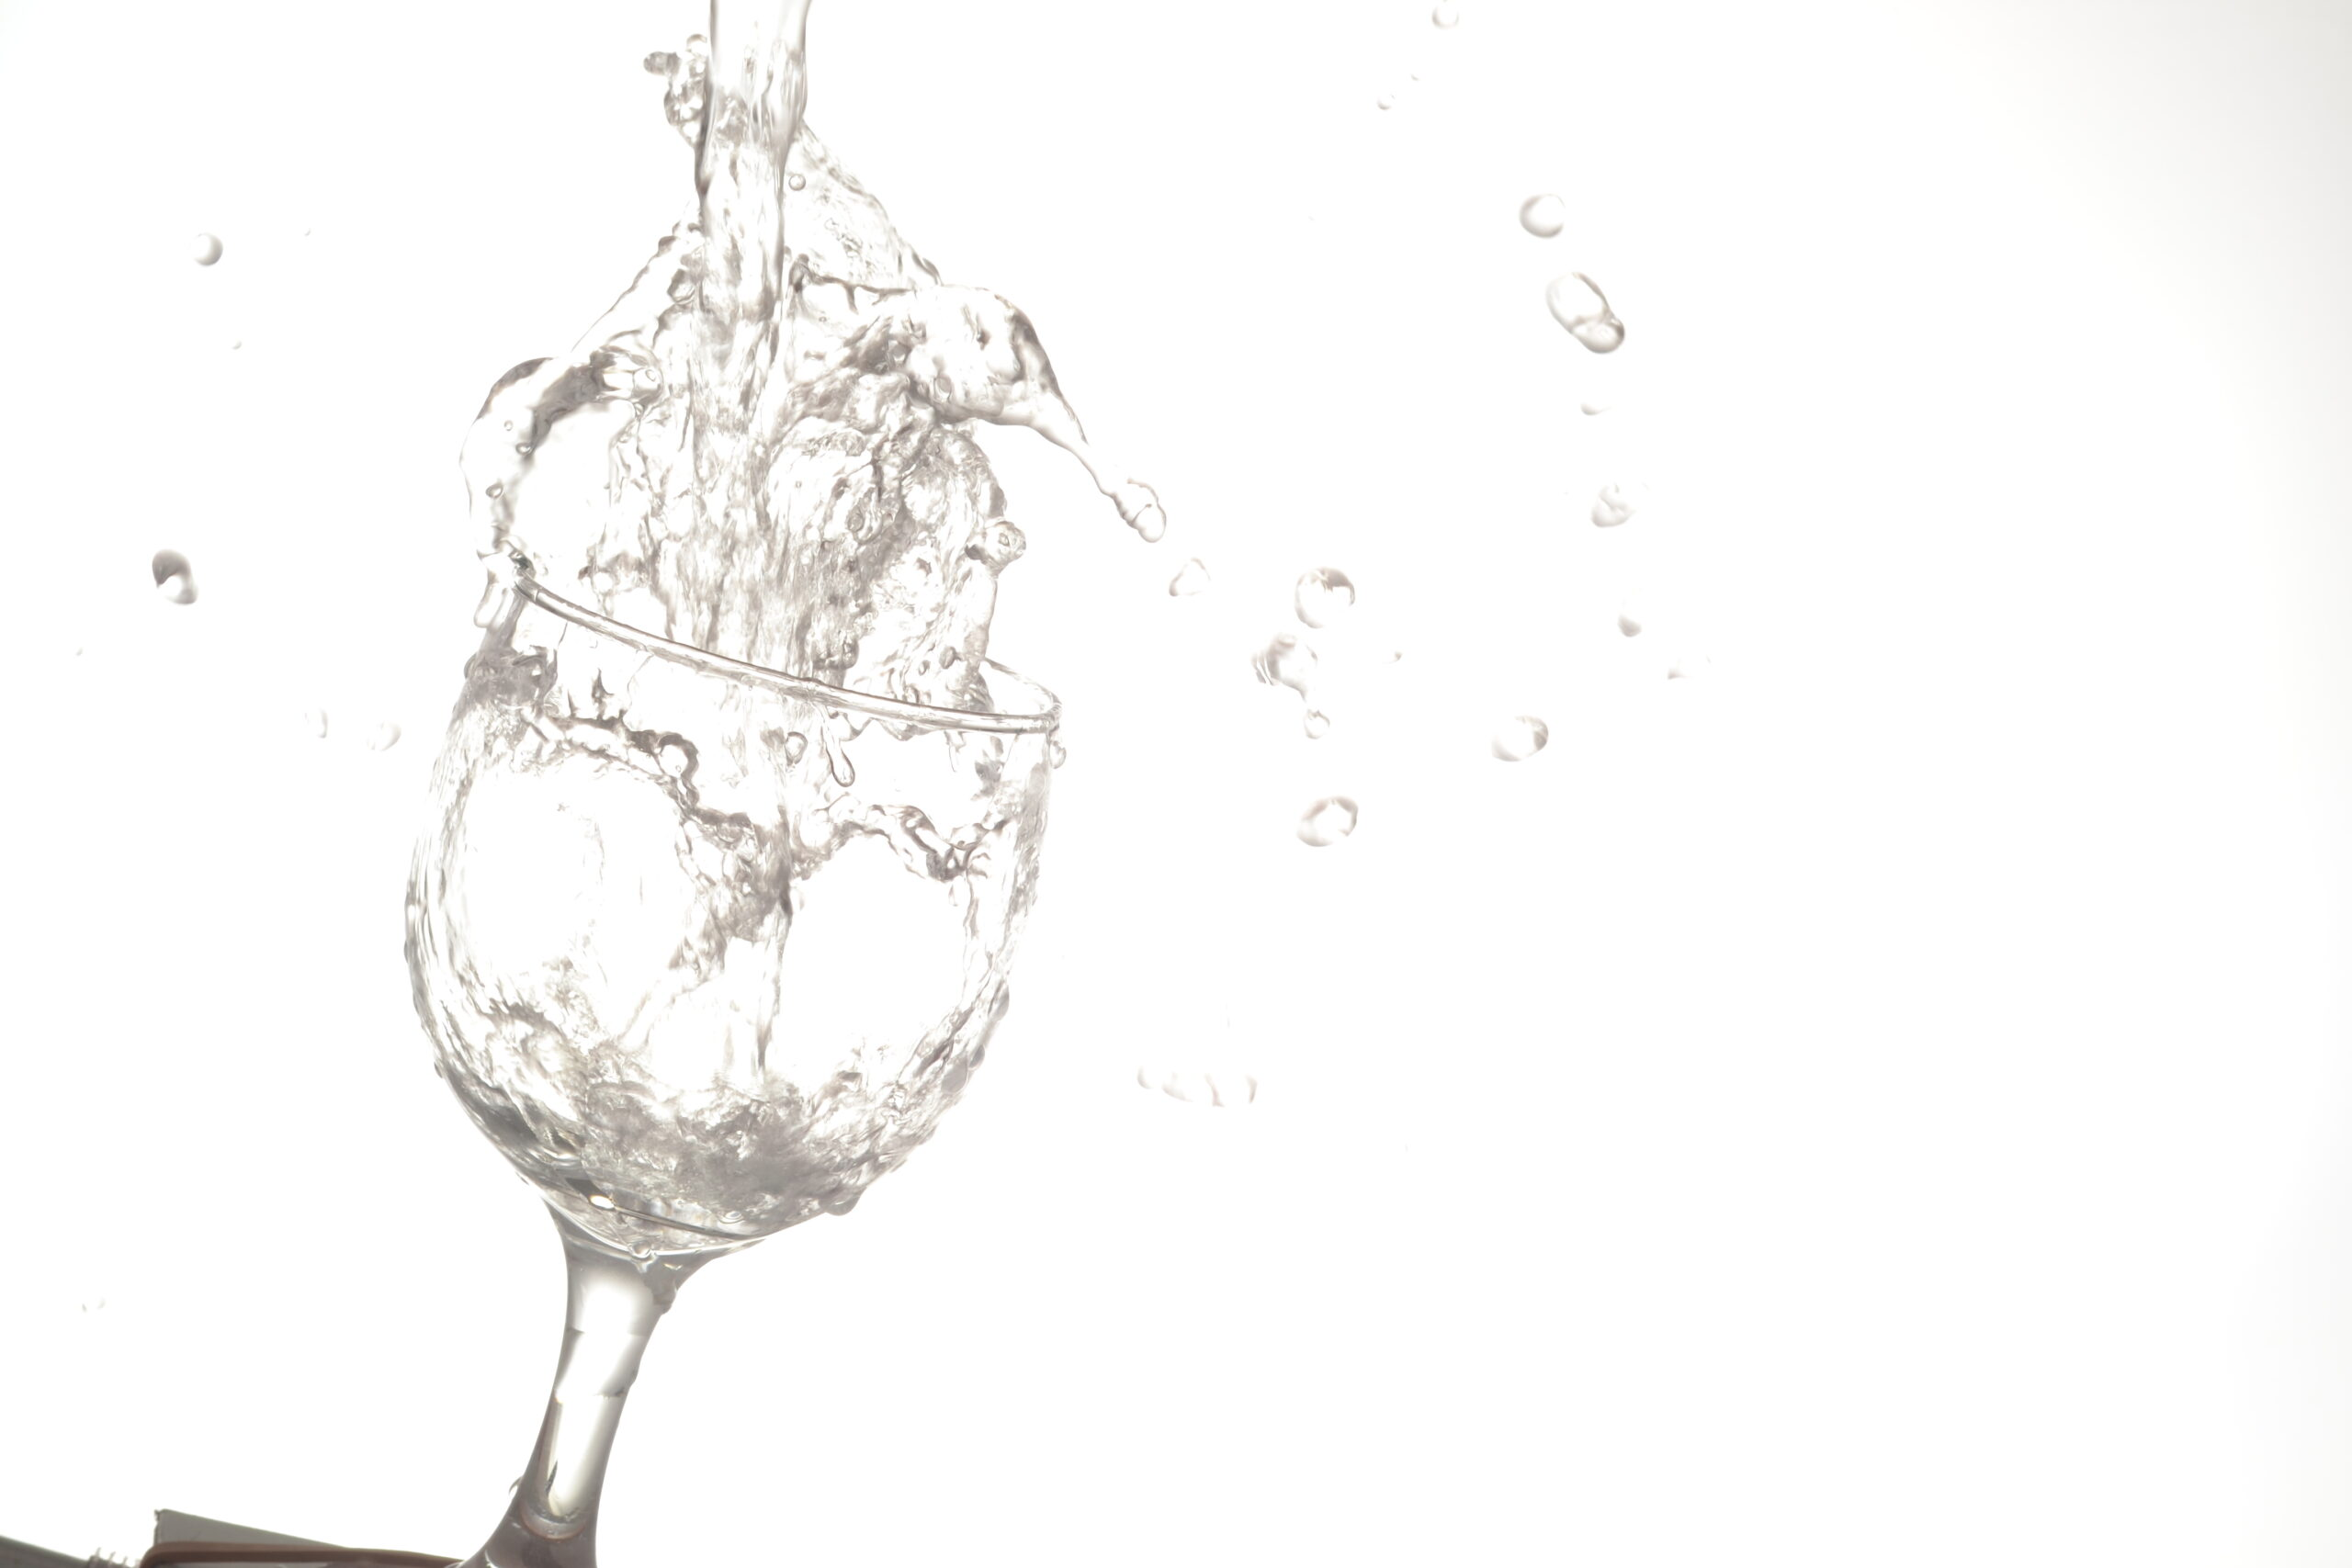 water, splashing, wine glass,